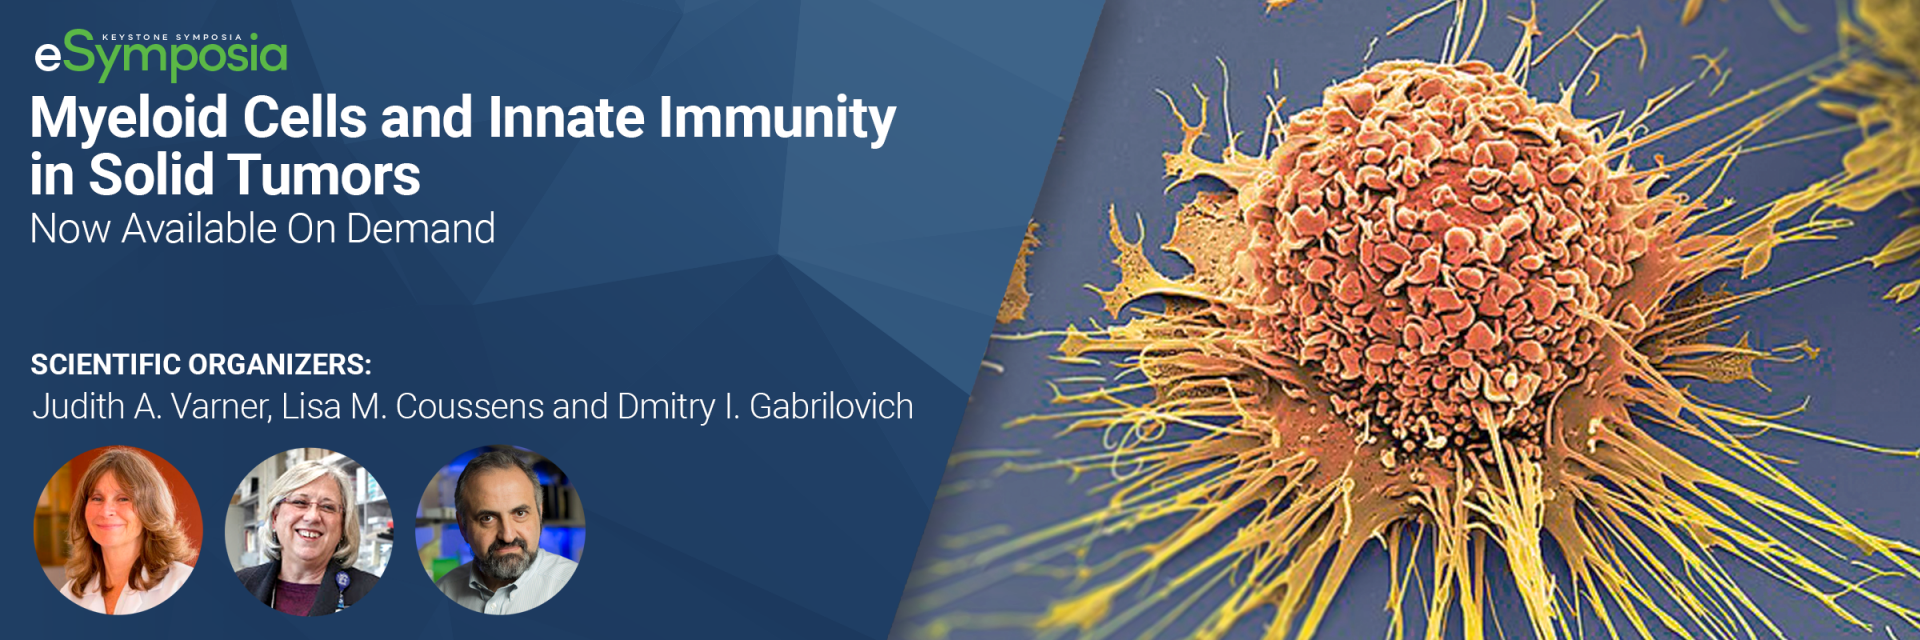 Myeloid Cells and Innate Immunity in Solid Tumors